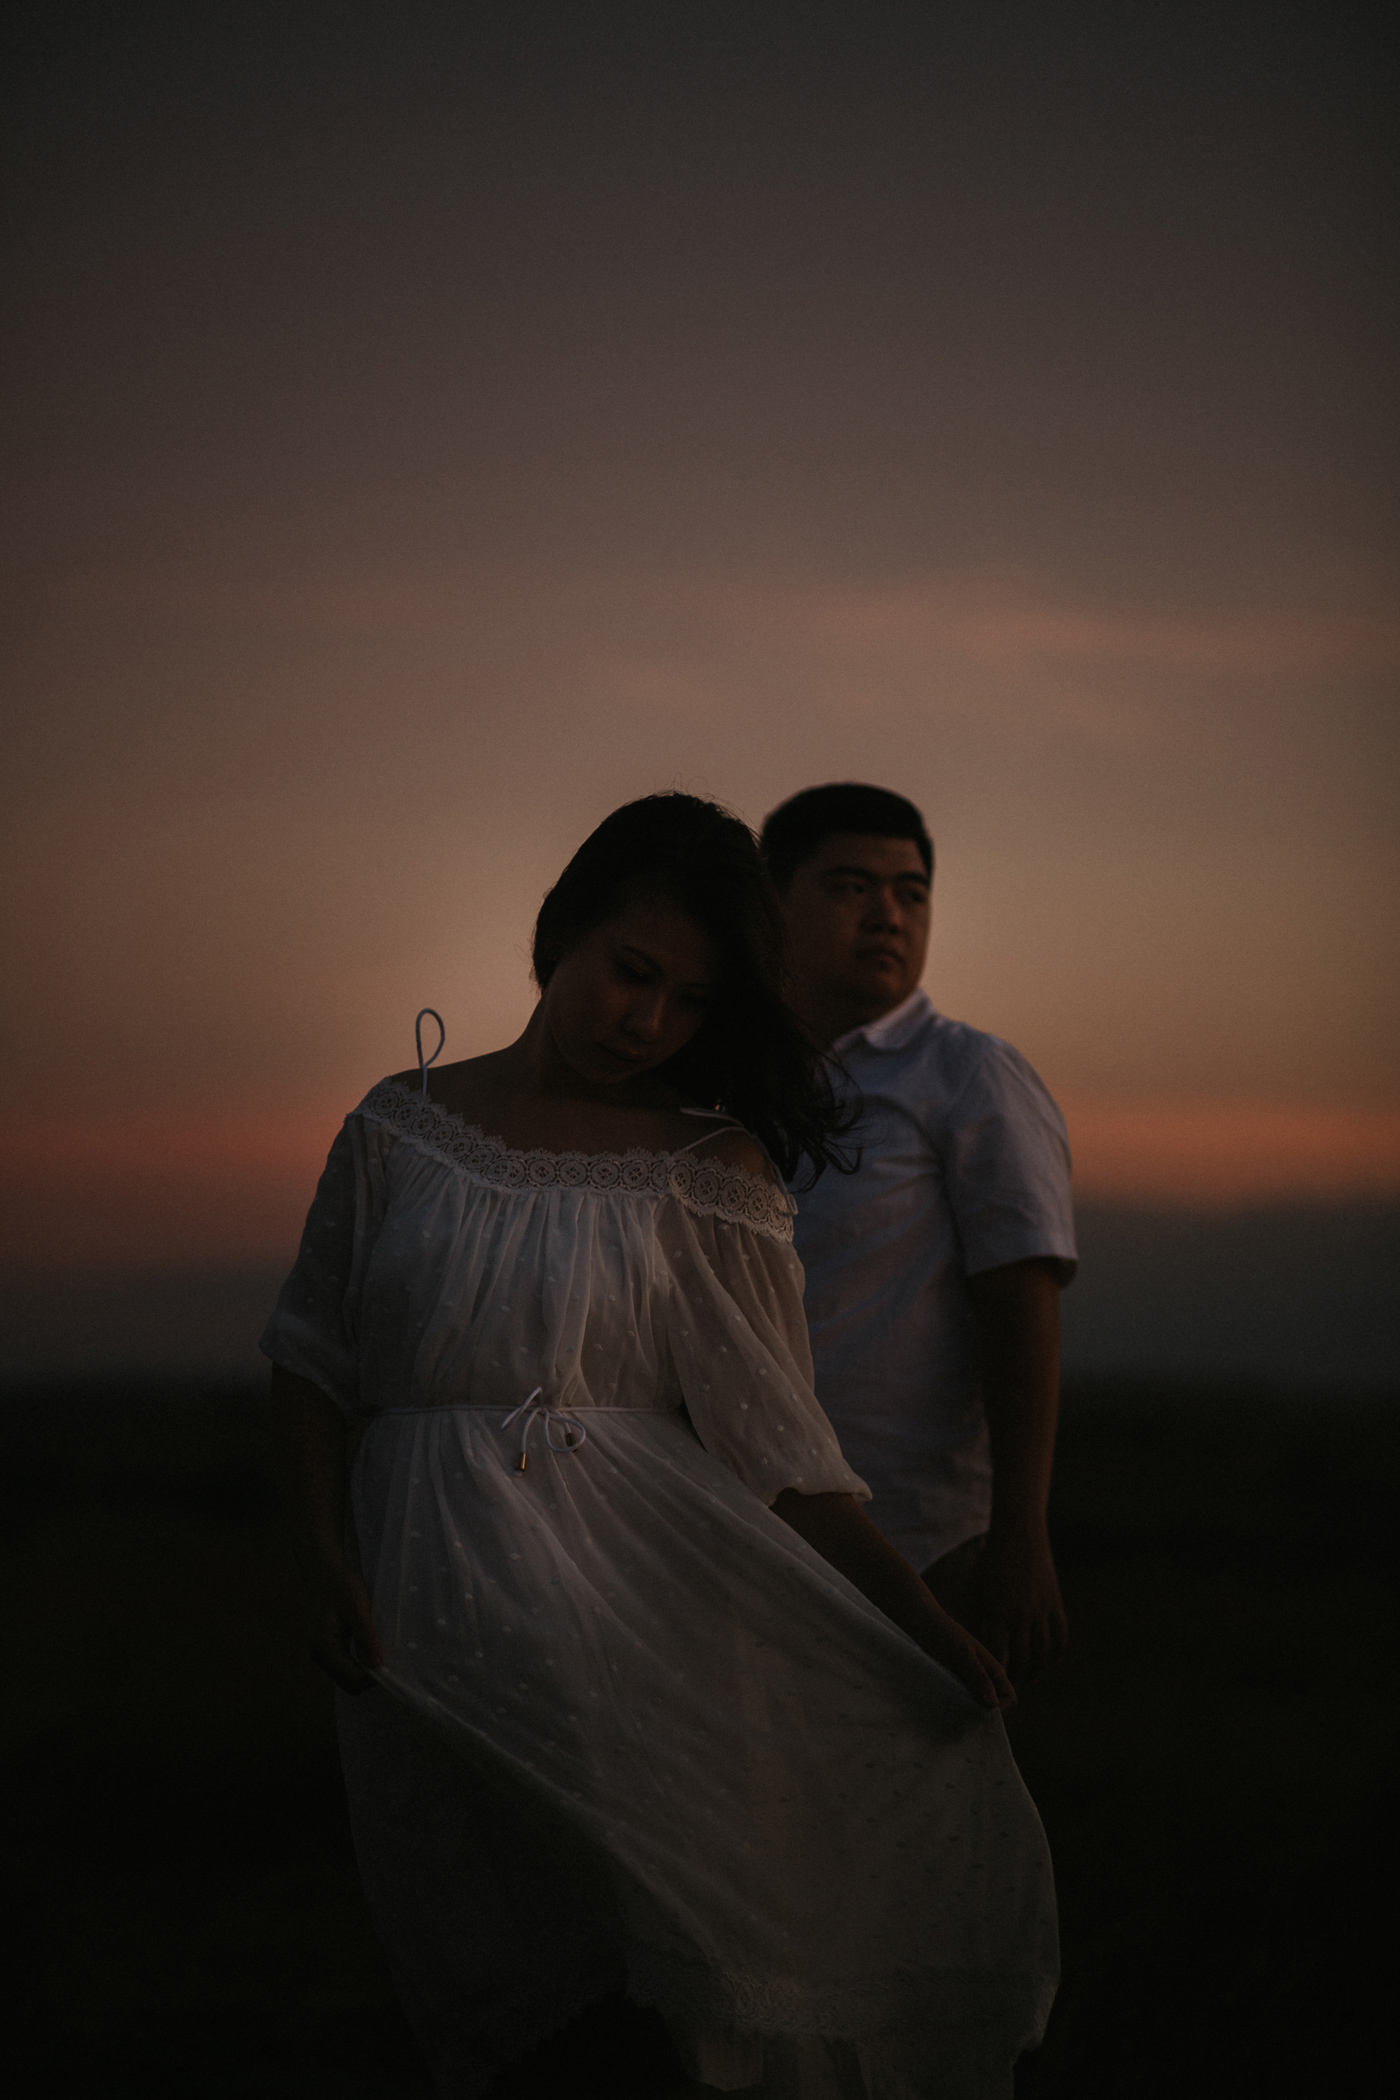 Sumba prewedding Gladys Hansen Connection session iluminen Bali photographer destination photography mountain waingaipu waimarang Bukit tenau bukit persaudaraan NTT Savannah lake